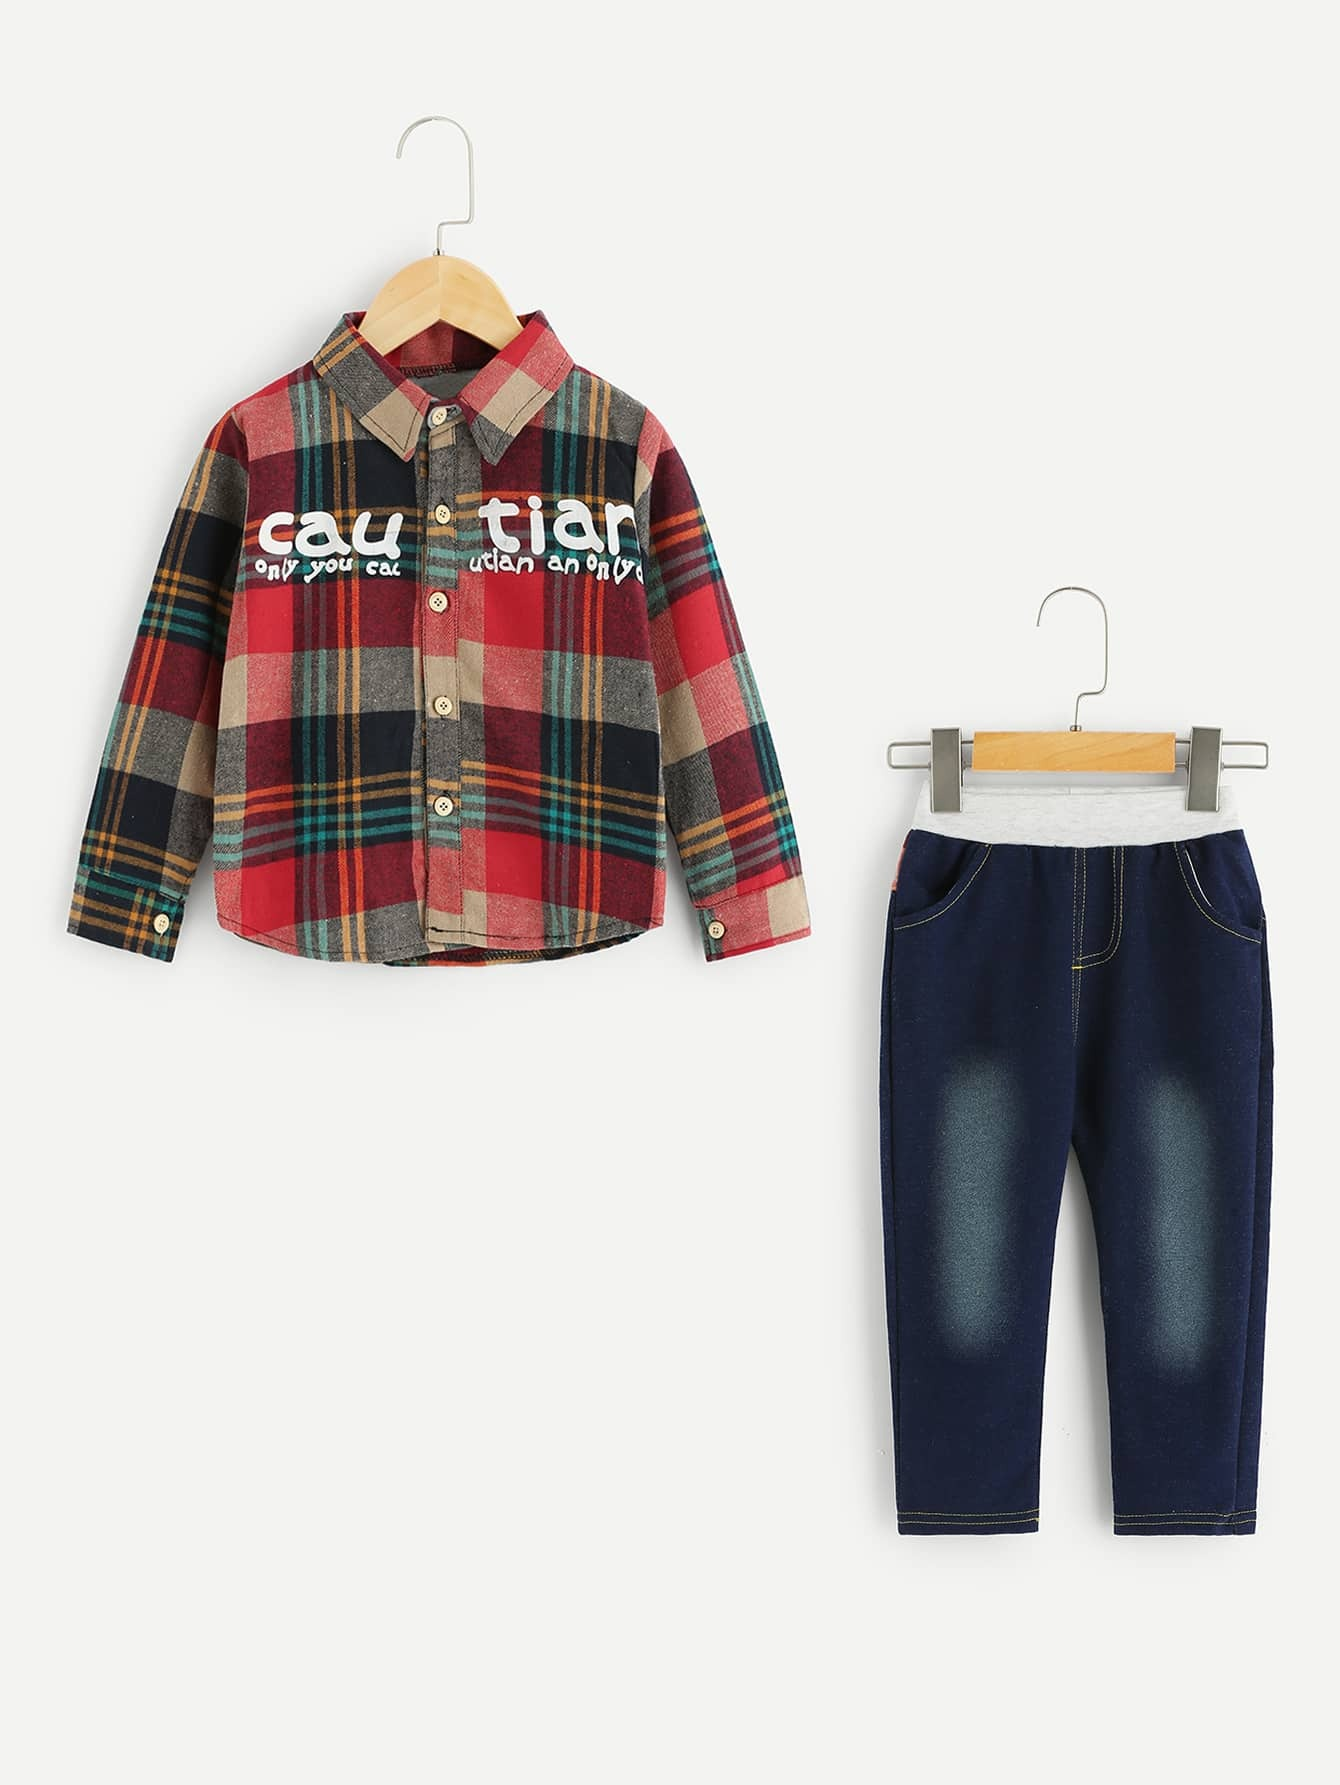 Toddler Boys Letter & Plaid Pattern Shirt With Jeans Toddler Boys Letter & Plaid Pattern Shirt With Jeans